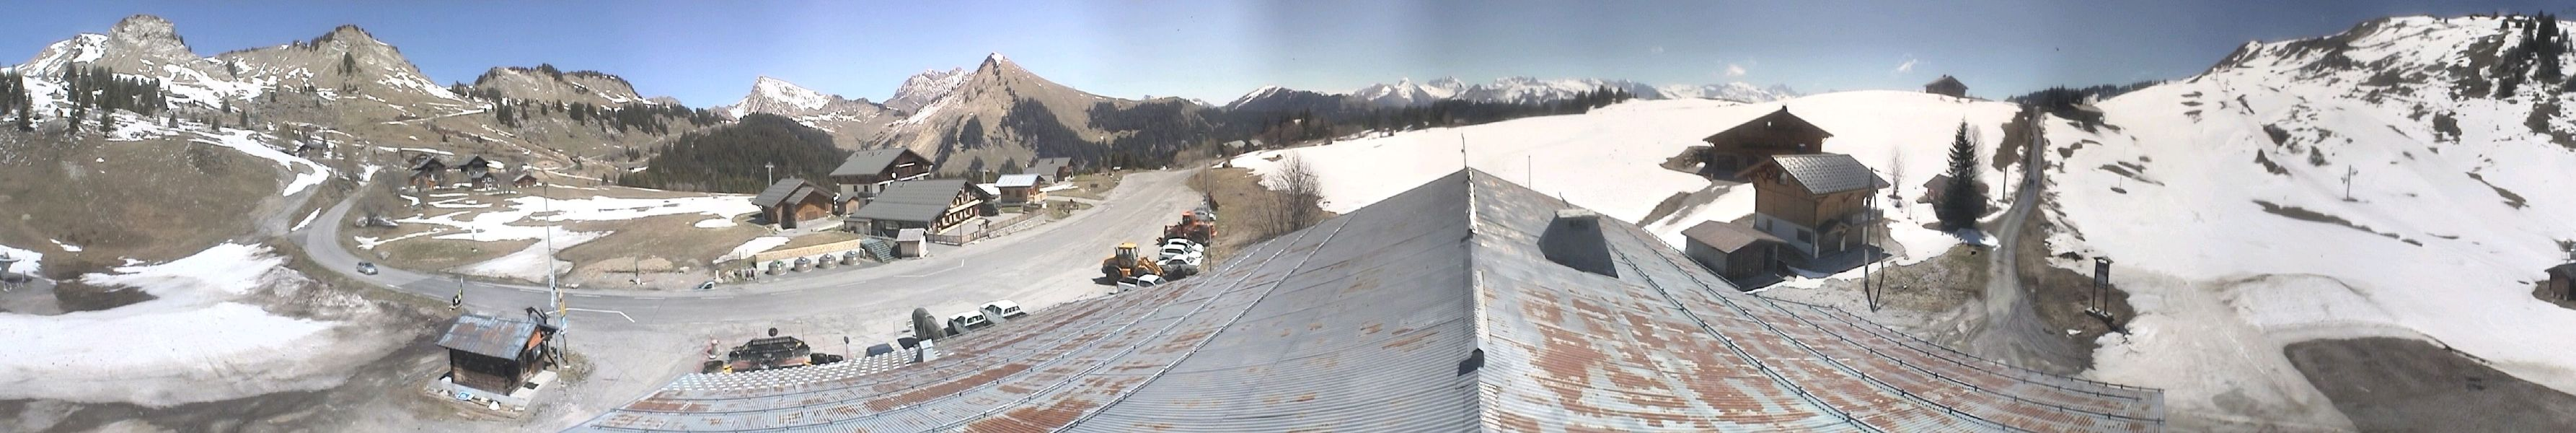 Webcam praz de lys